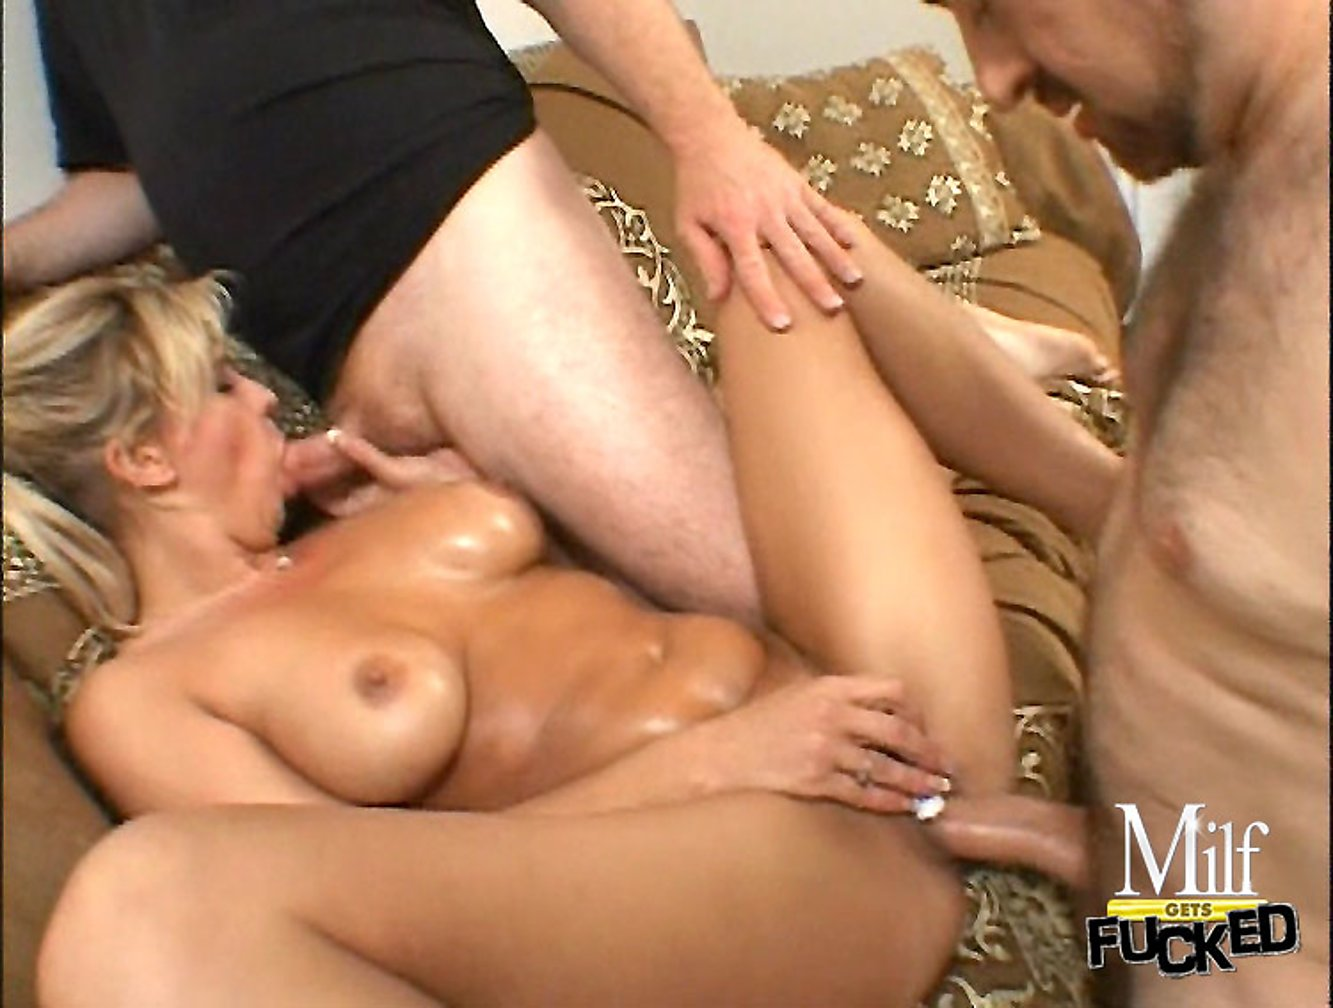 Hottest Girl Gets Fucked